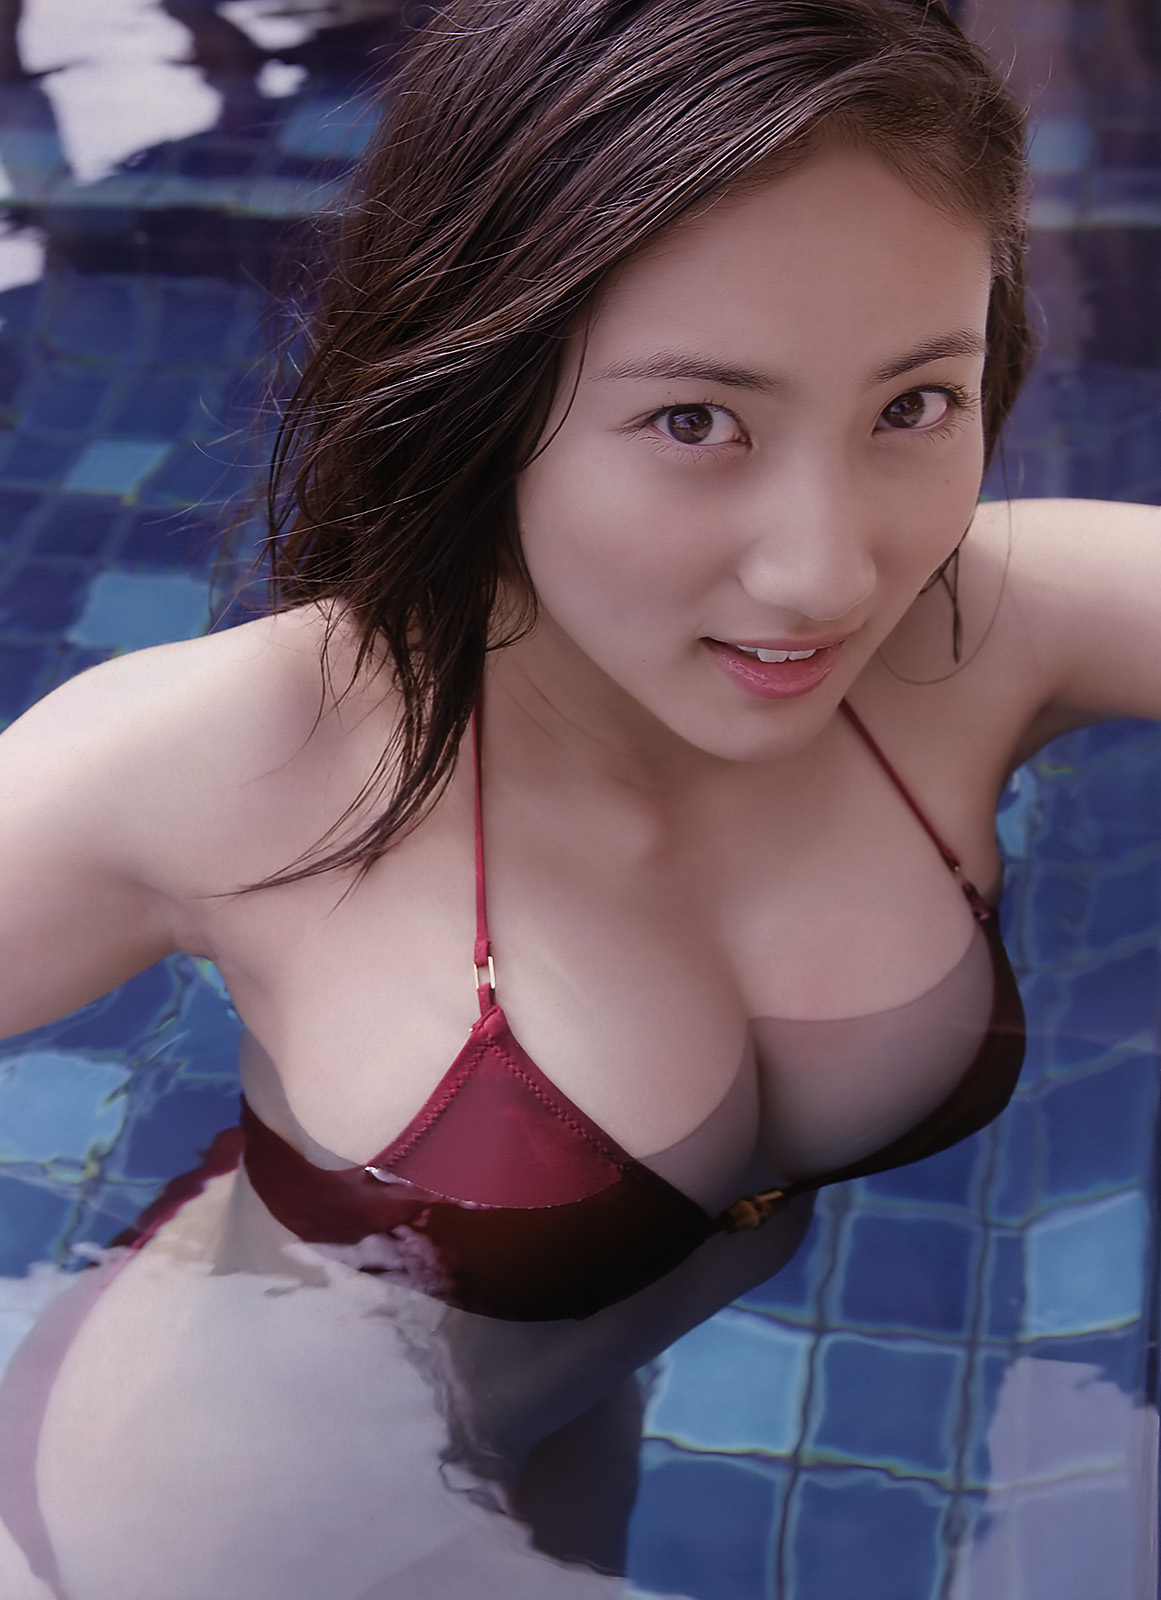 Saaya irie video